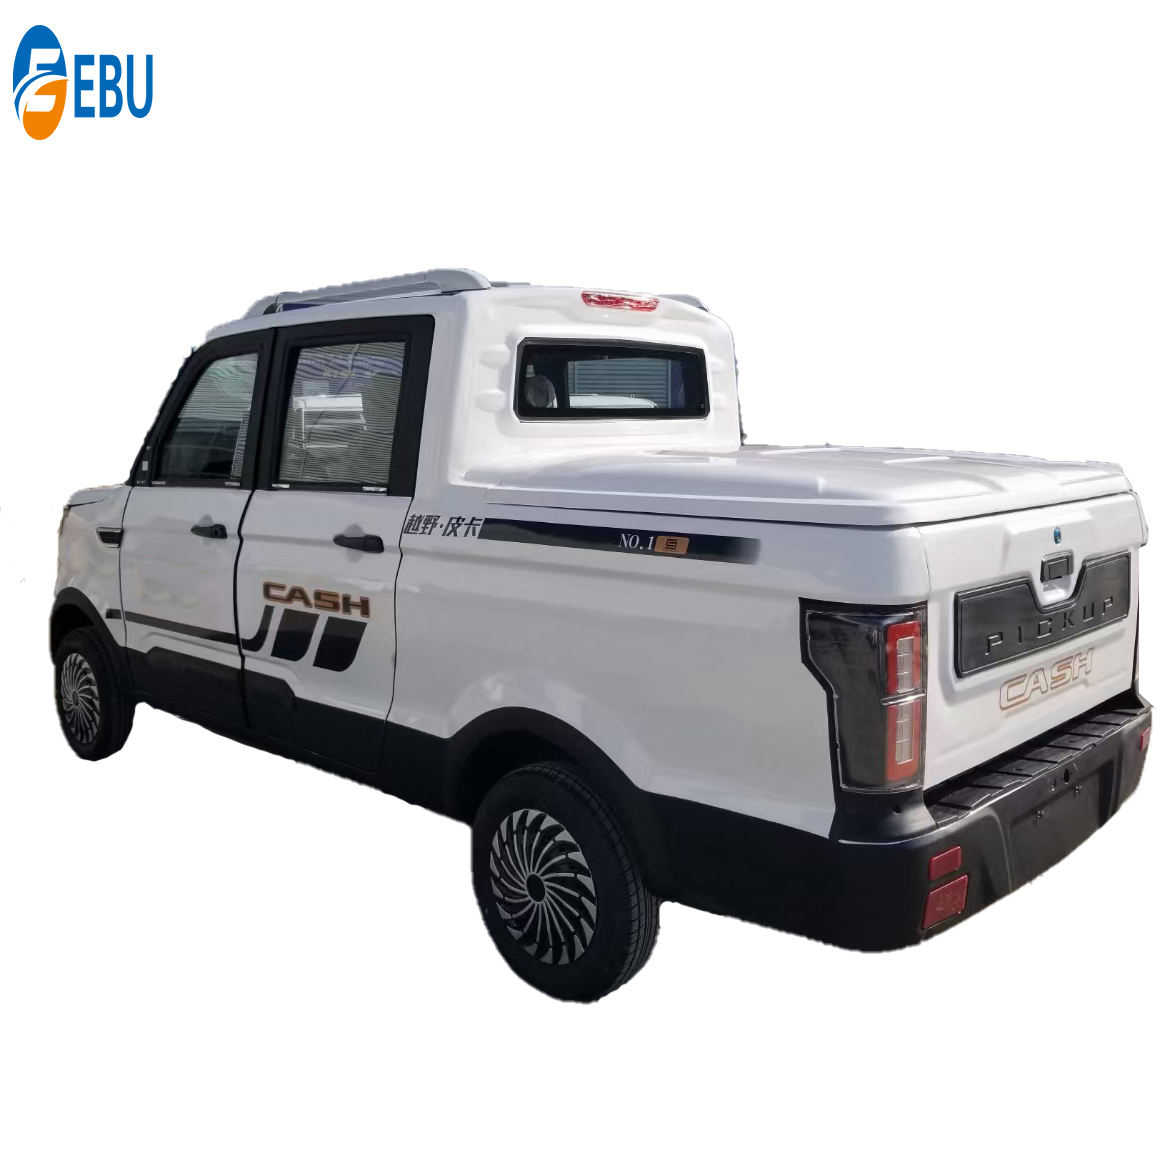 2021 New Designed Electric Pickup Powerful 72 V 4 KW Electric Pick Up Mini Trucks Electric Cargo Vehicle Made in China